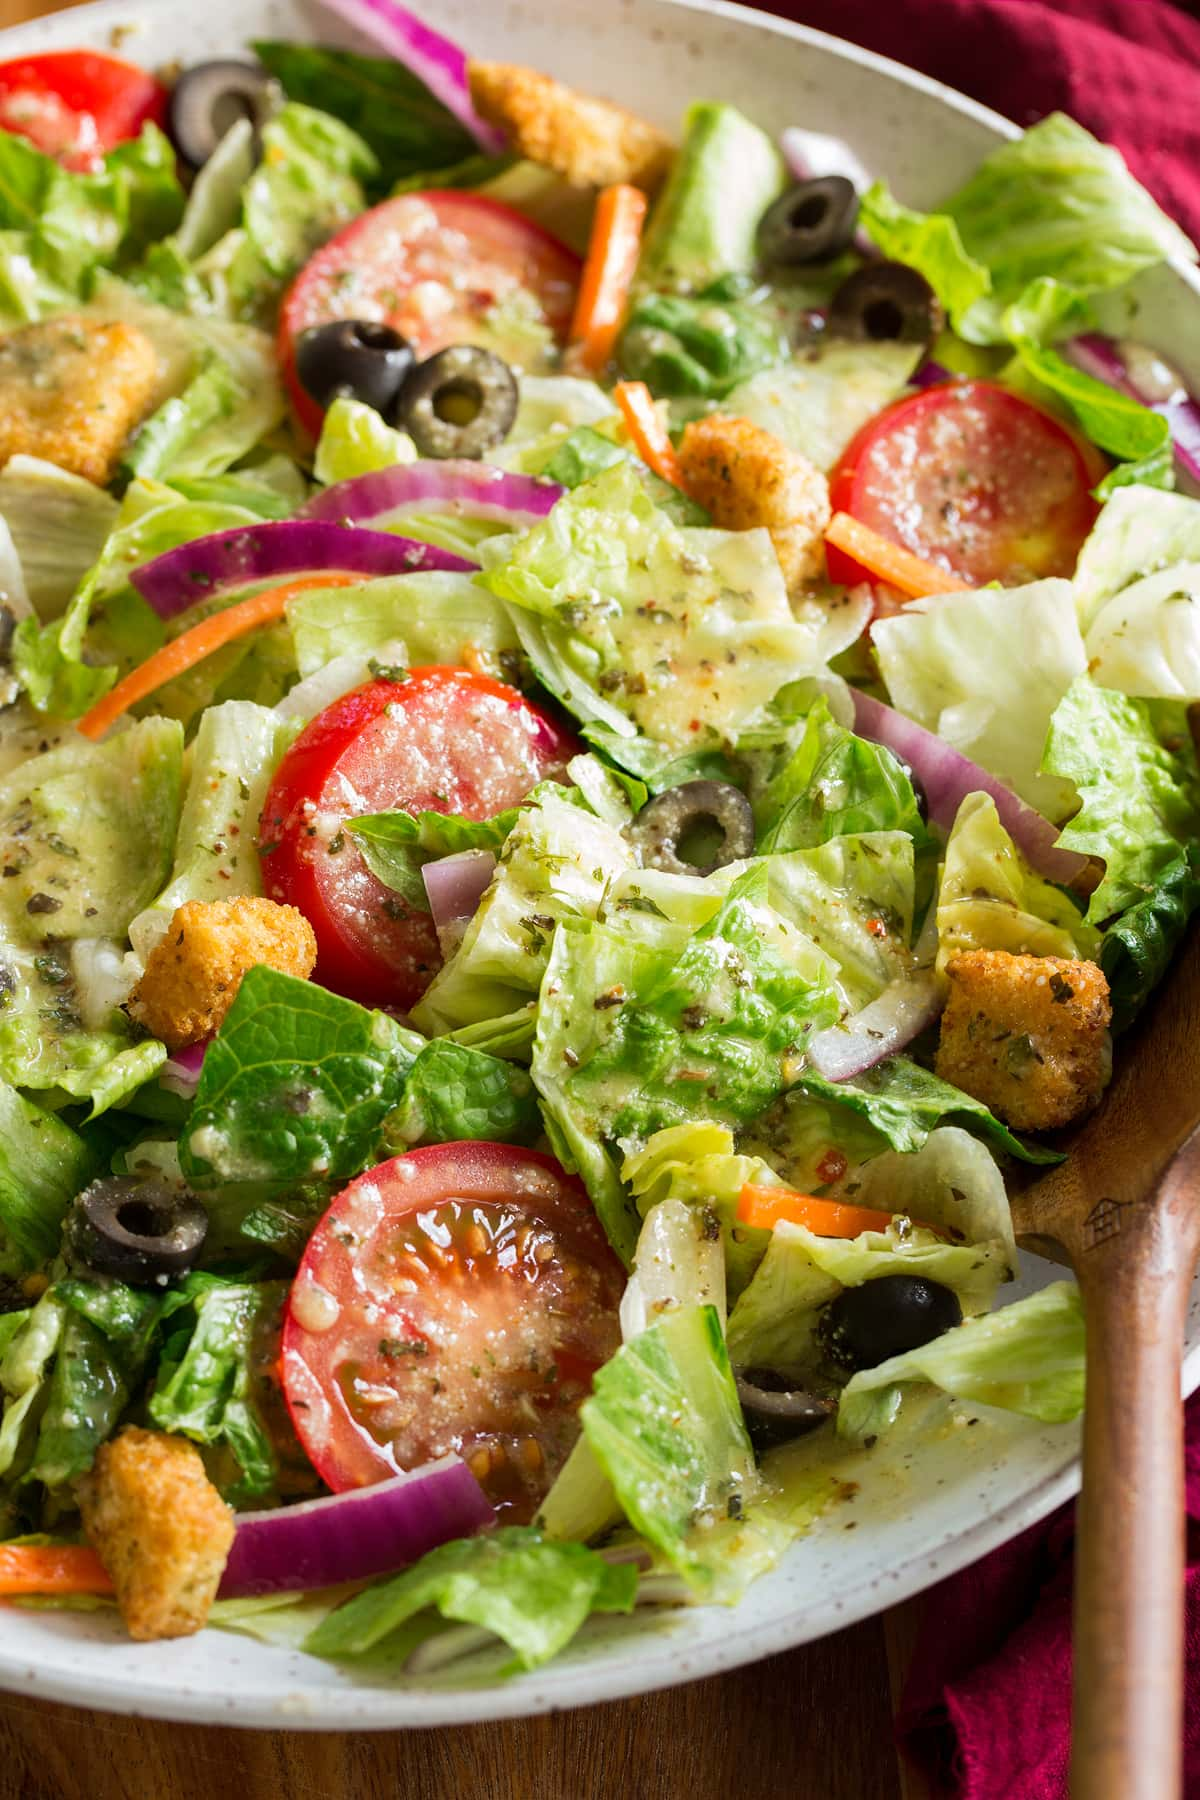 Close up photo of salad tossed with homemade Italian salad dressing.